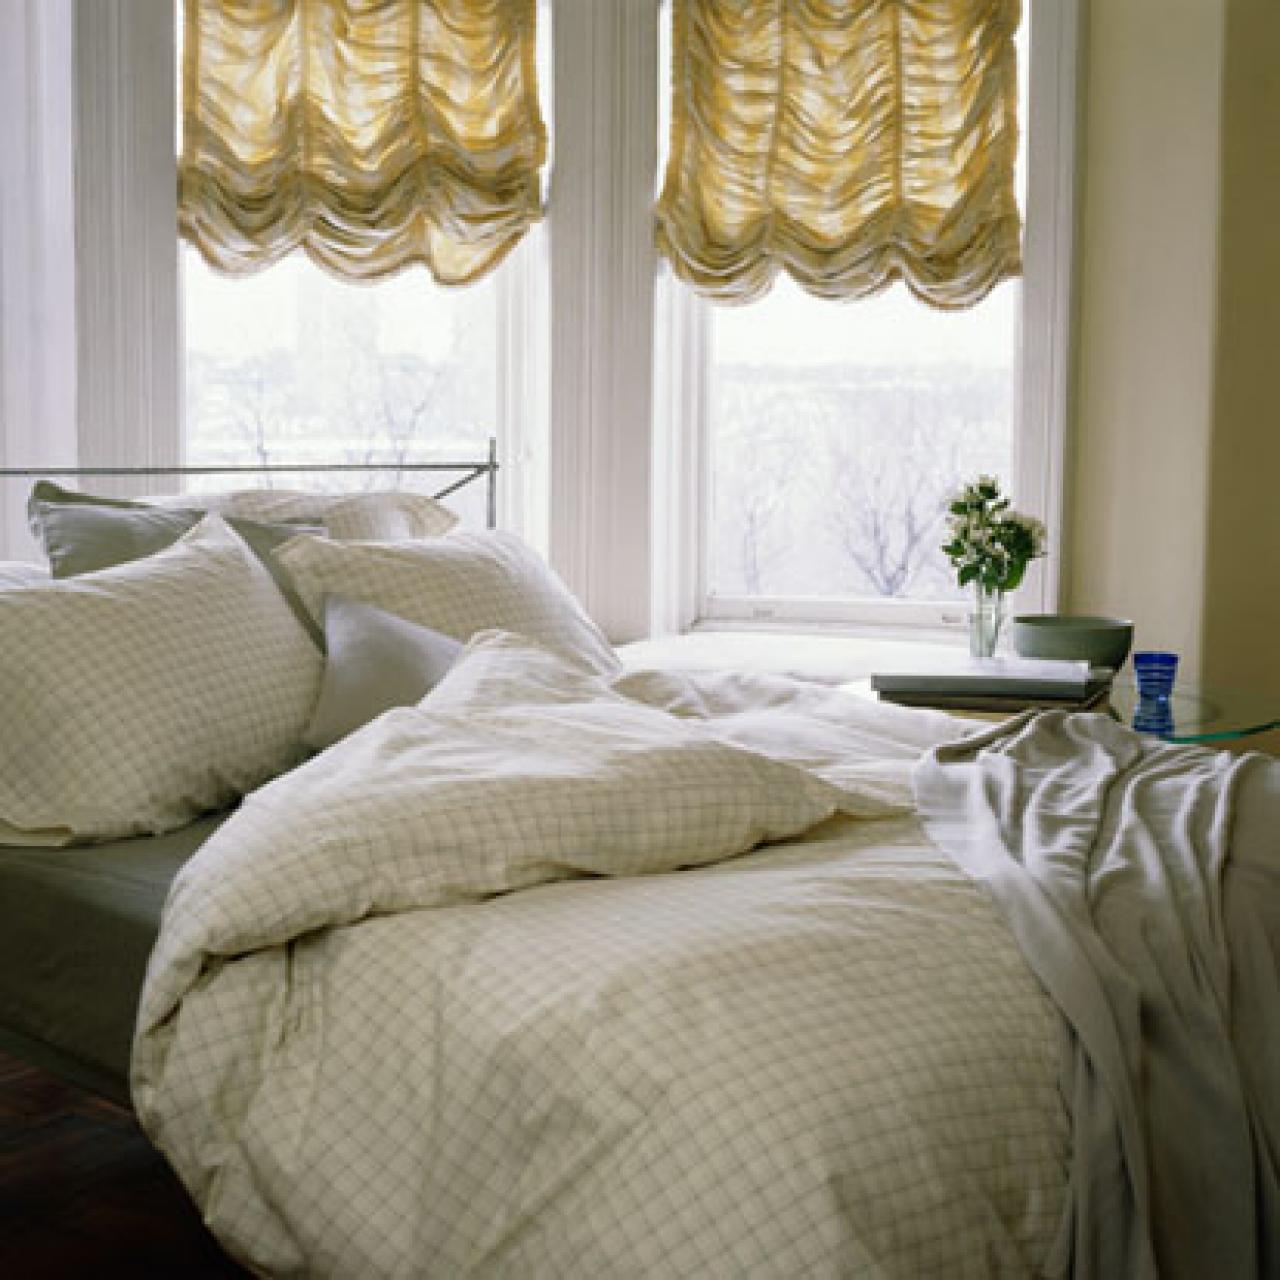 small bedroom window treatment ideas getting started on window treatments hgtv 19803